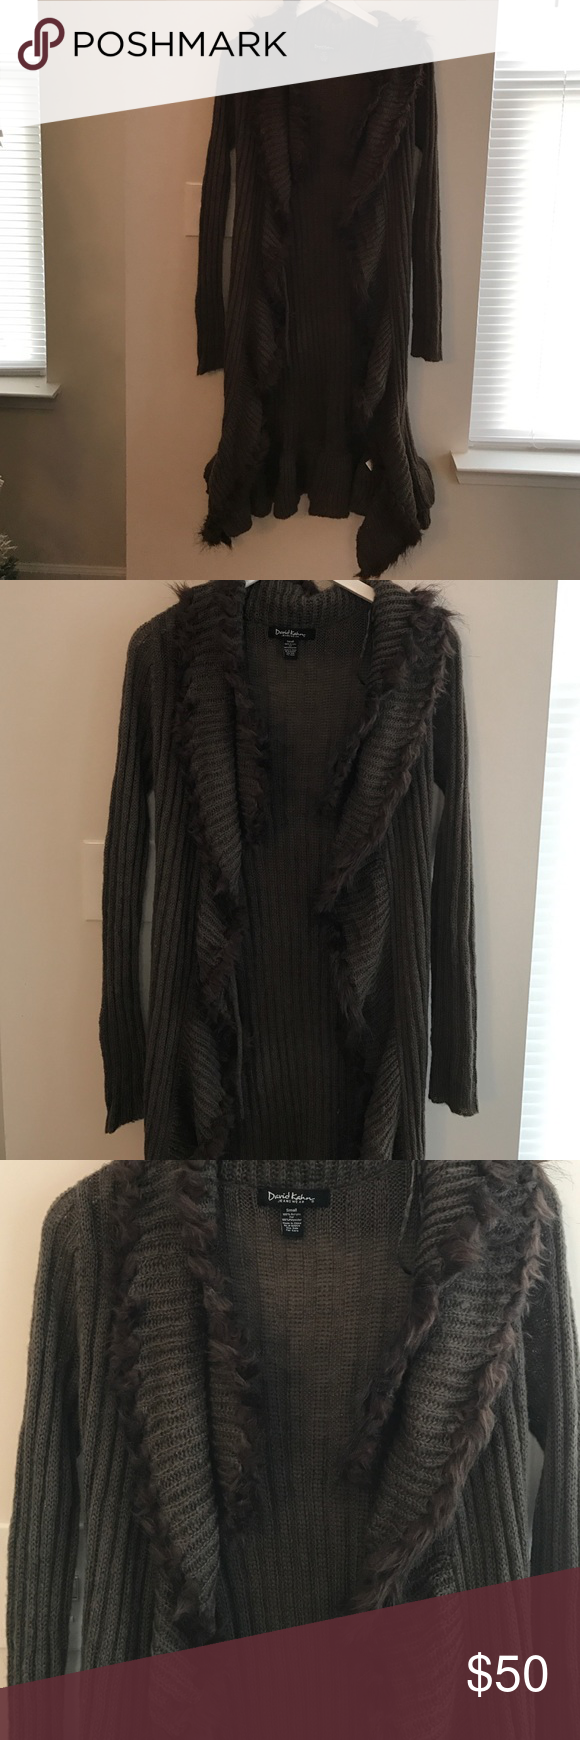 Full length, long body brown sweater | Brown, Luxury and Bodies